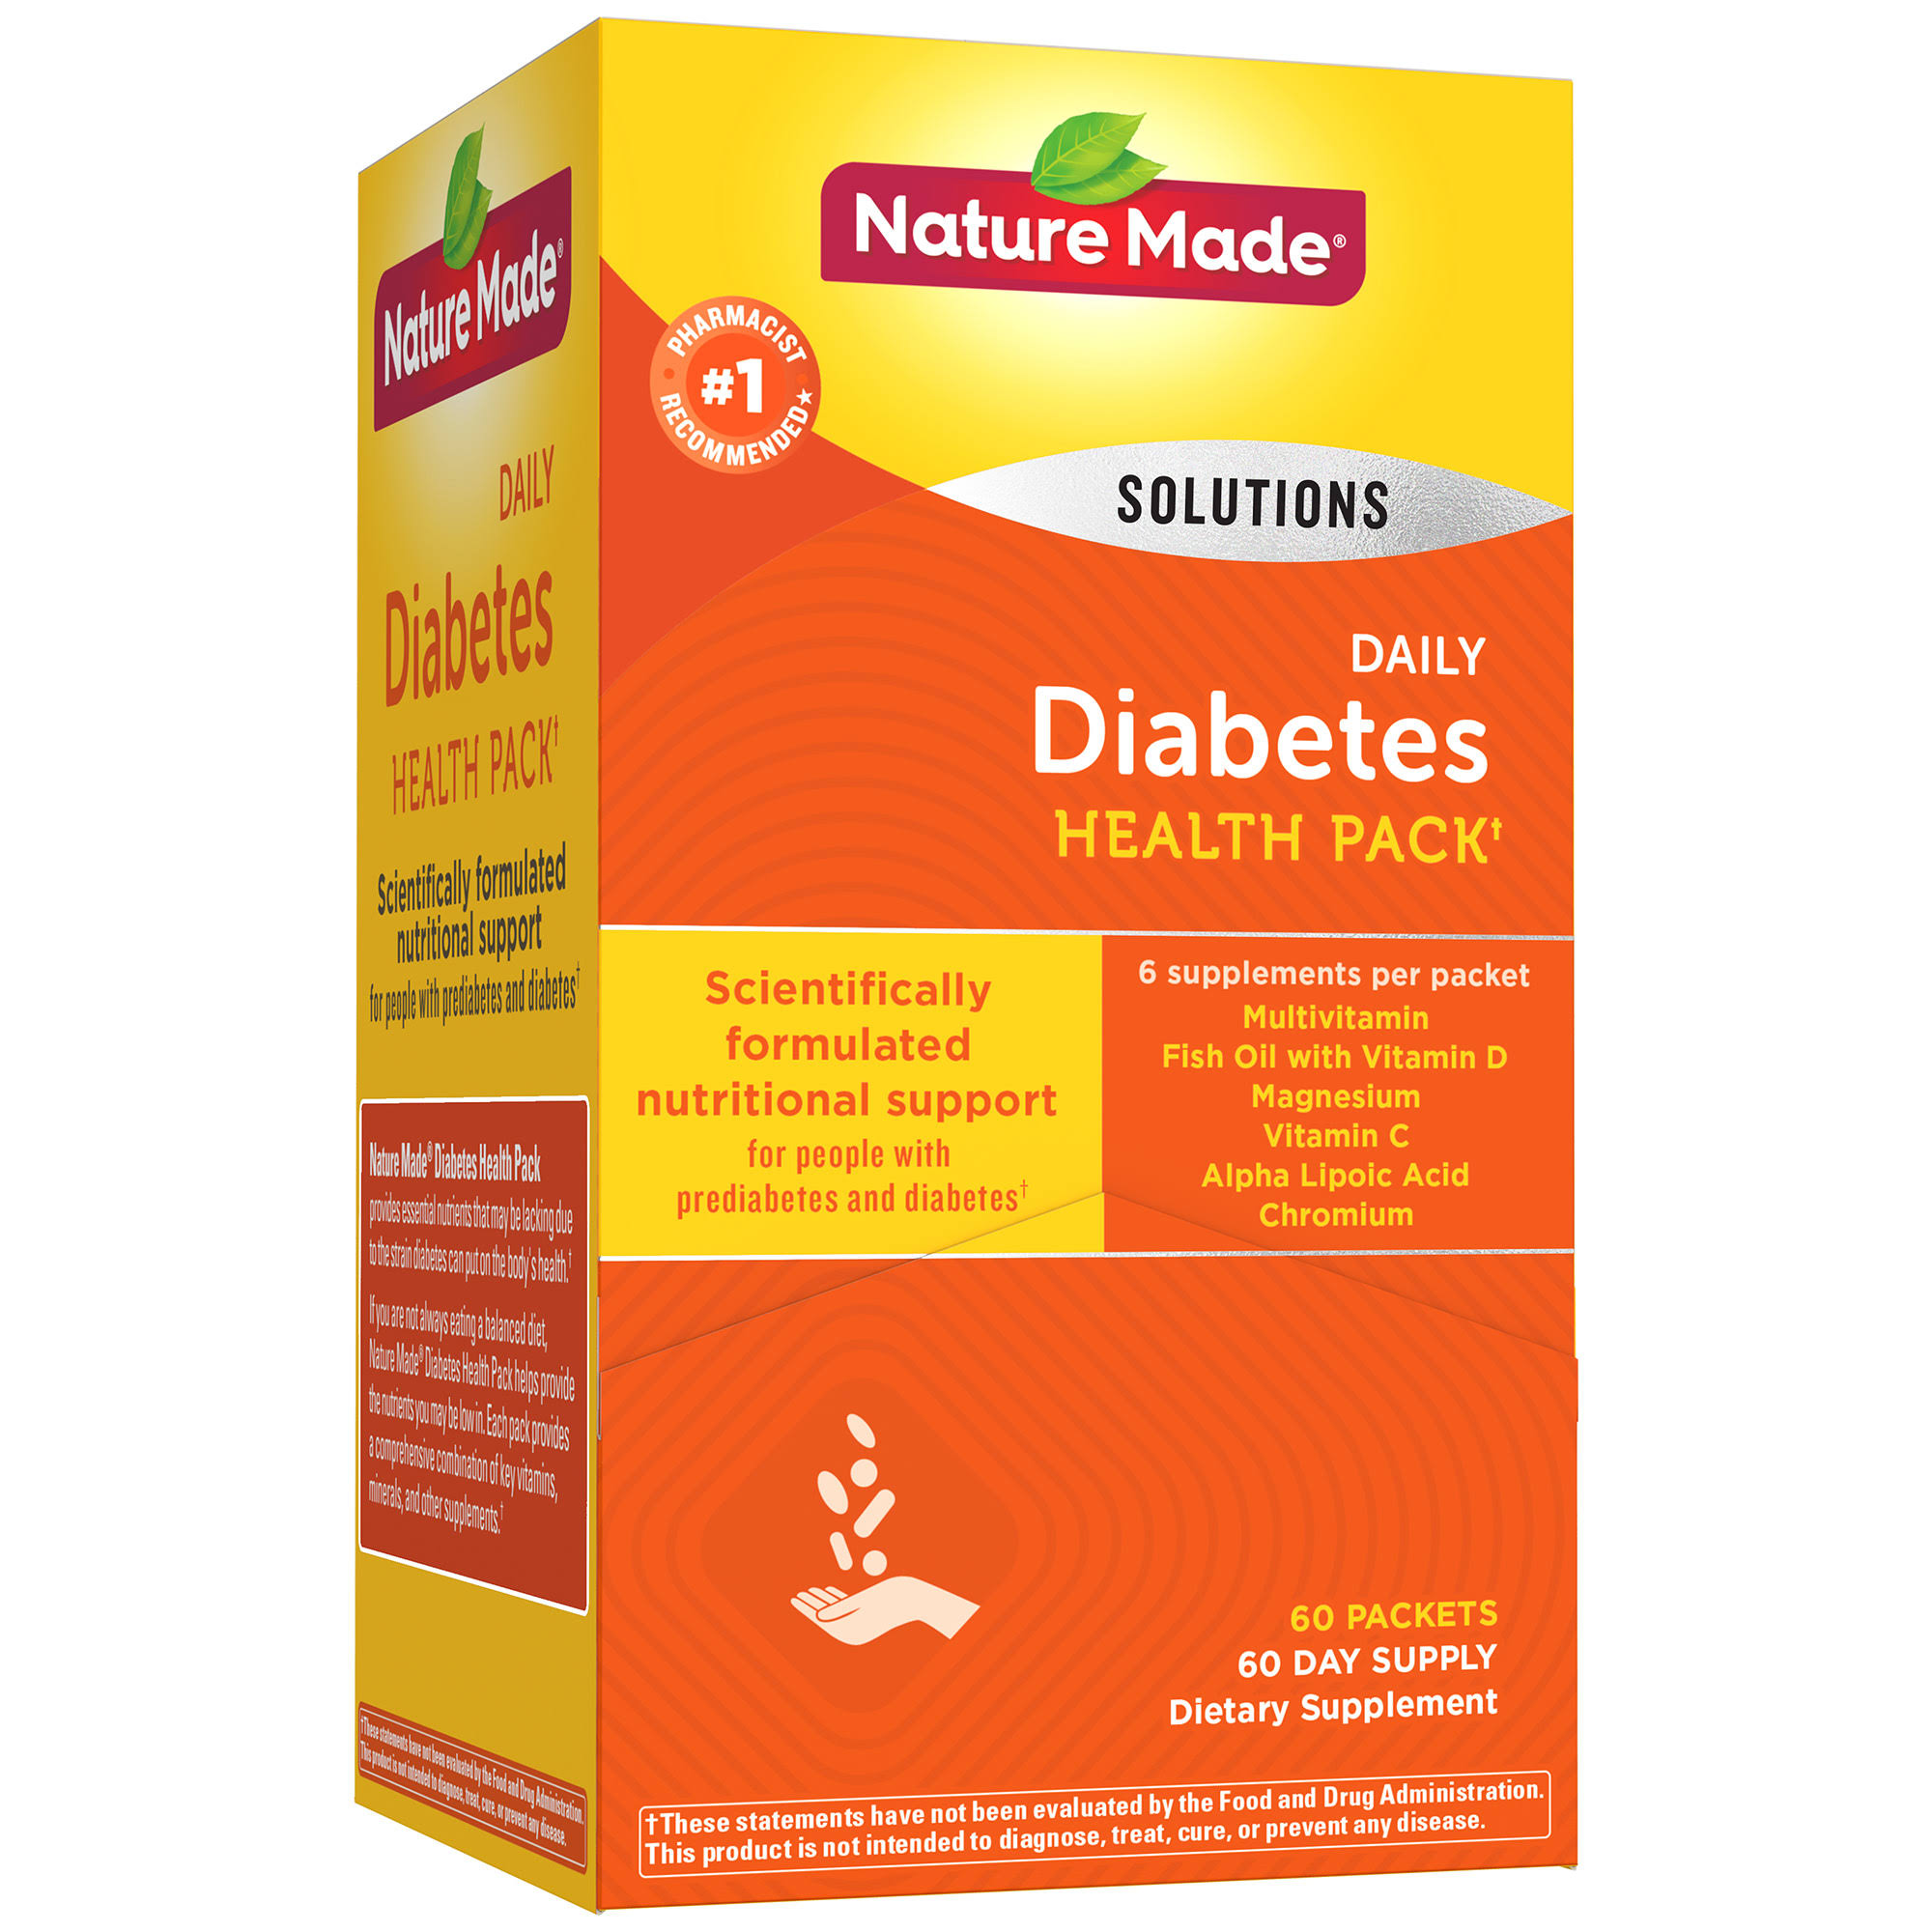 Nature Made Diabetes Health Pack - 60 Packets